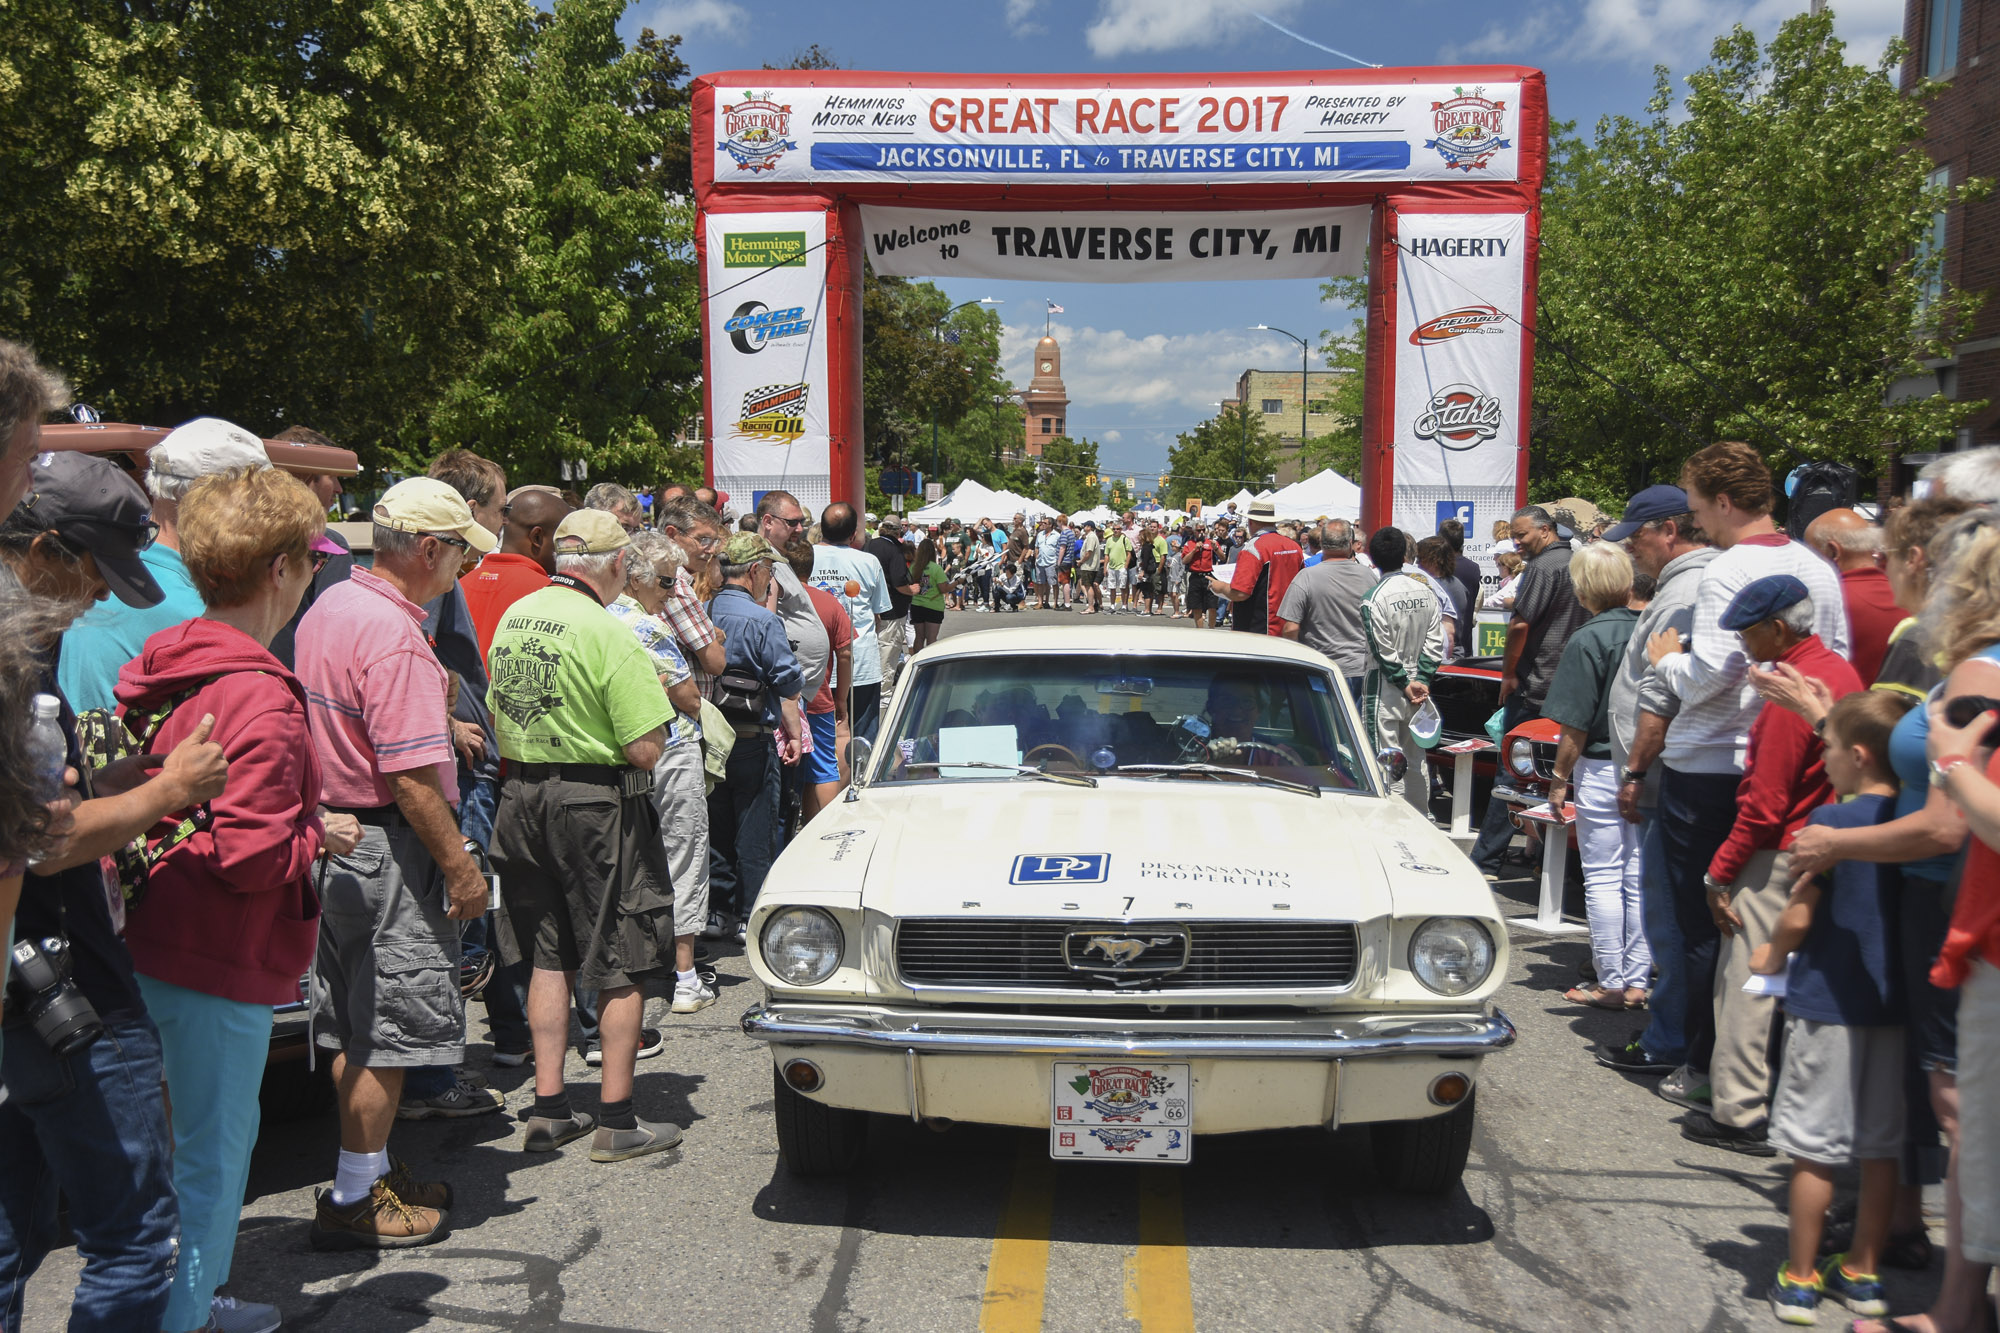 The Great Race » Crossing the Finish Line at the 2017 Great Race!